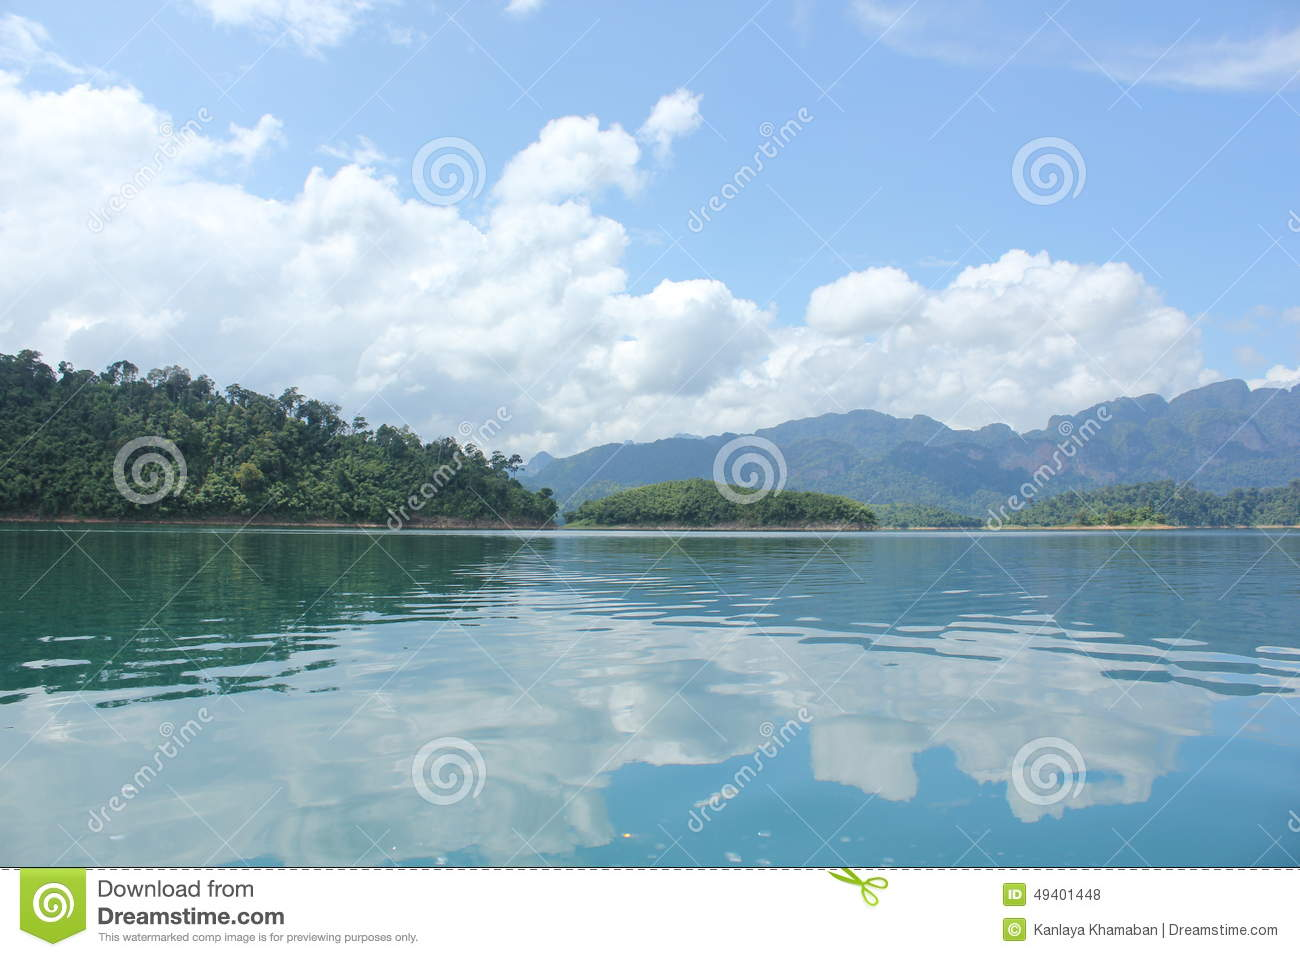 Download Guilin, Thailand stockfoto. Bild von landschaft, fluß - 49401448